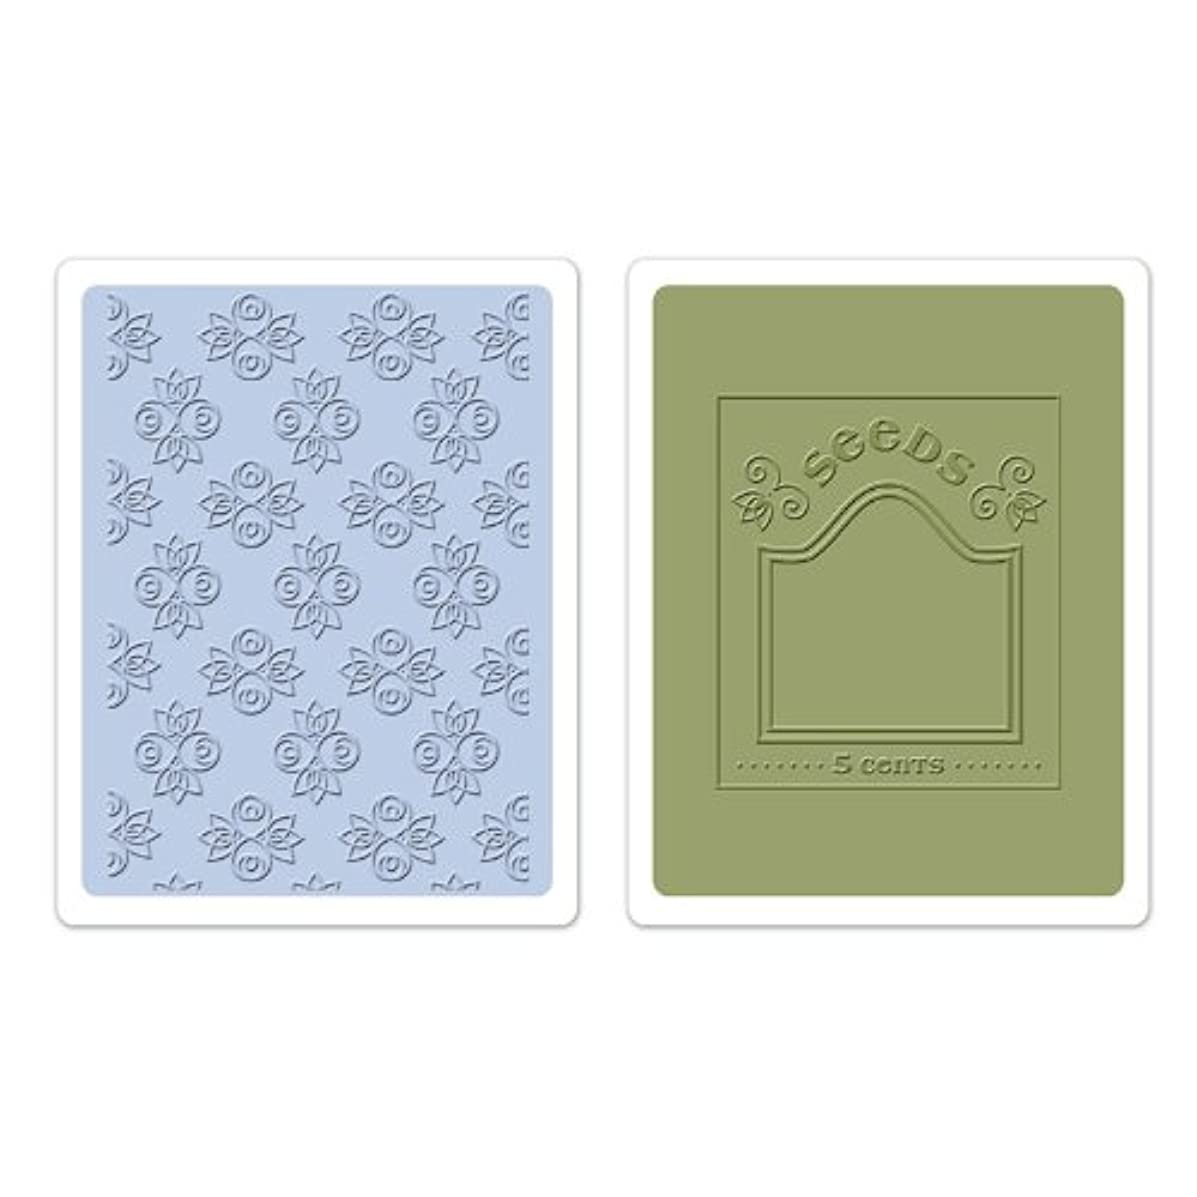 Sizzix Textured Impressions Embossing Folders 2PK - Rosebuds & Seed Packet Set by Eileen Hull